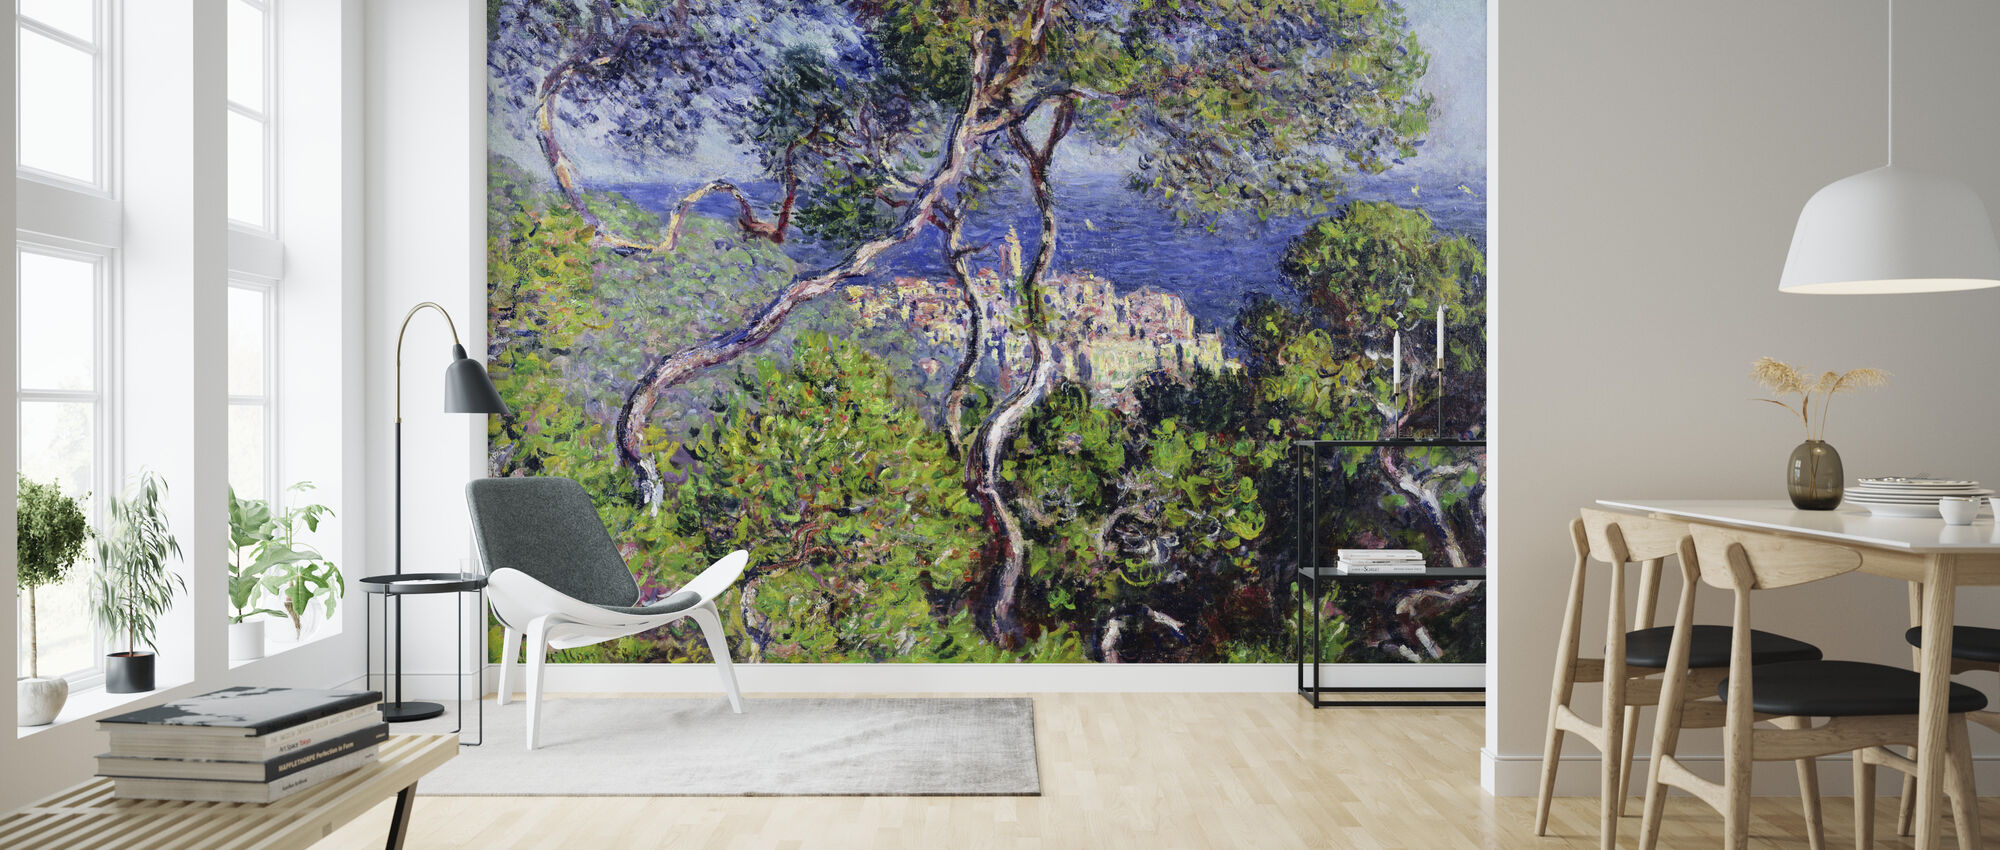 Bordighera -  Claude Monet - Behang - Woonkamer